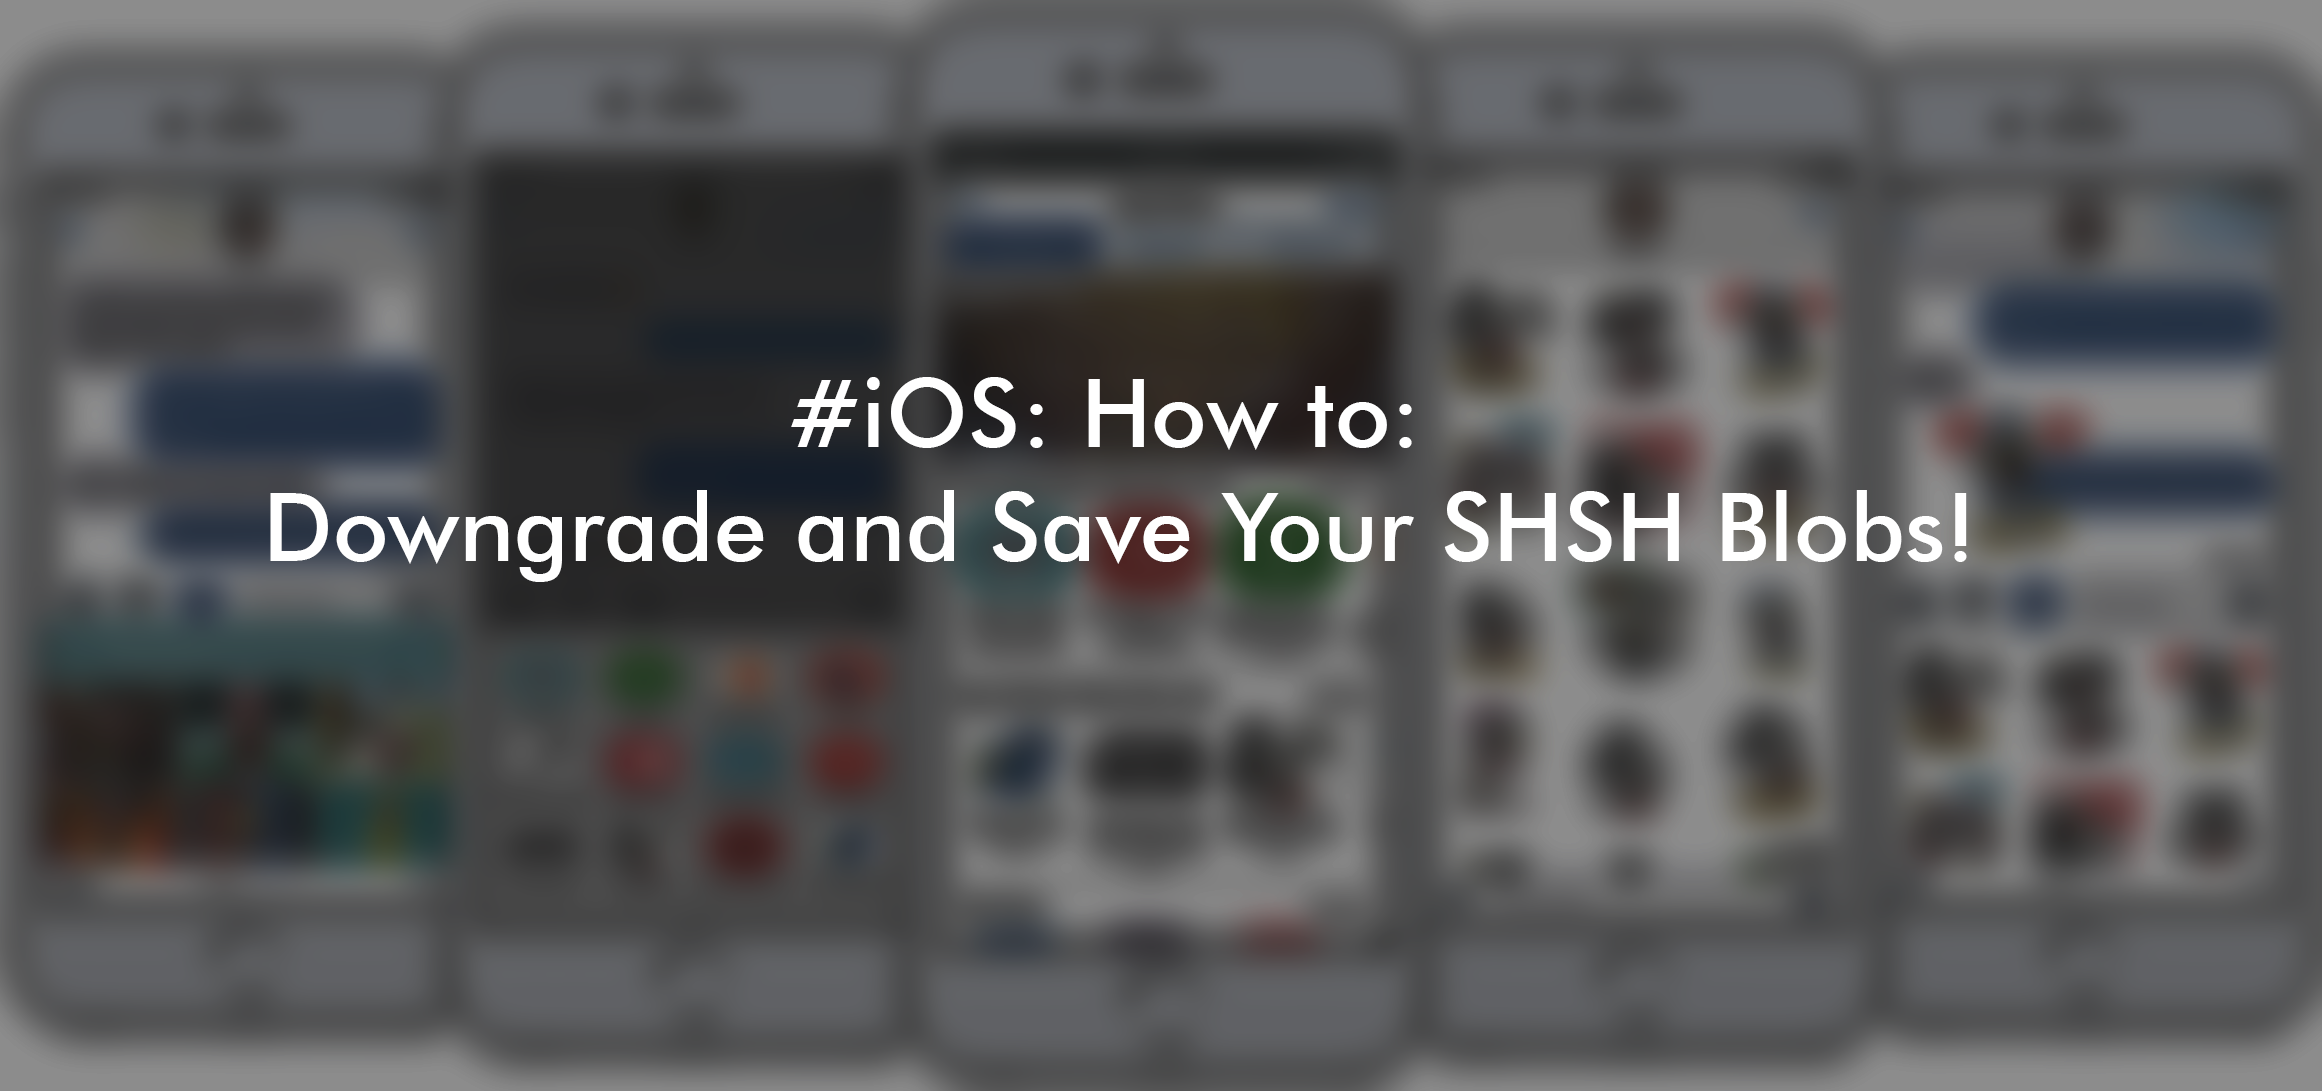 iOS Guide: How To Downgrade And Save SHSH Blobs! - Metodix - Medium